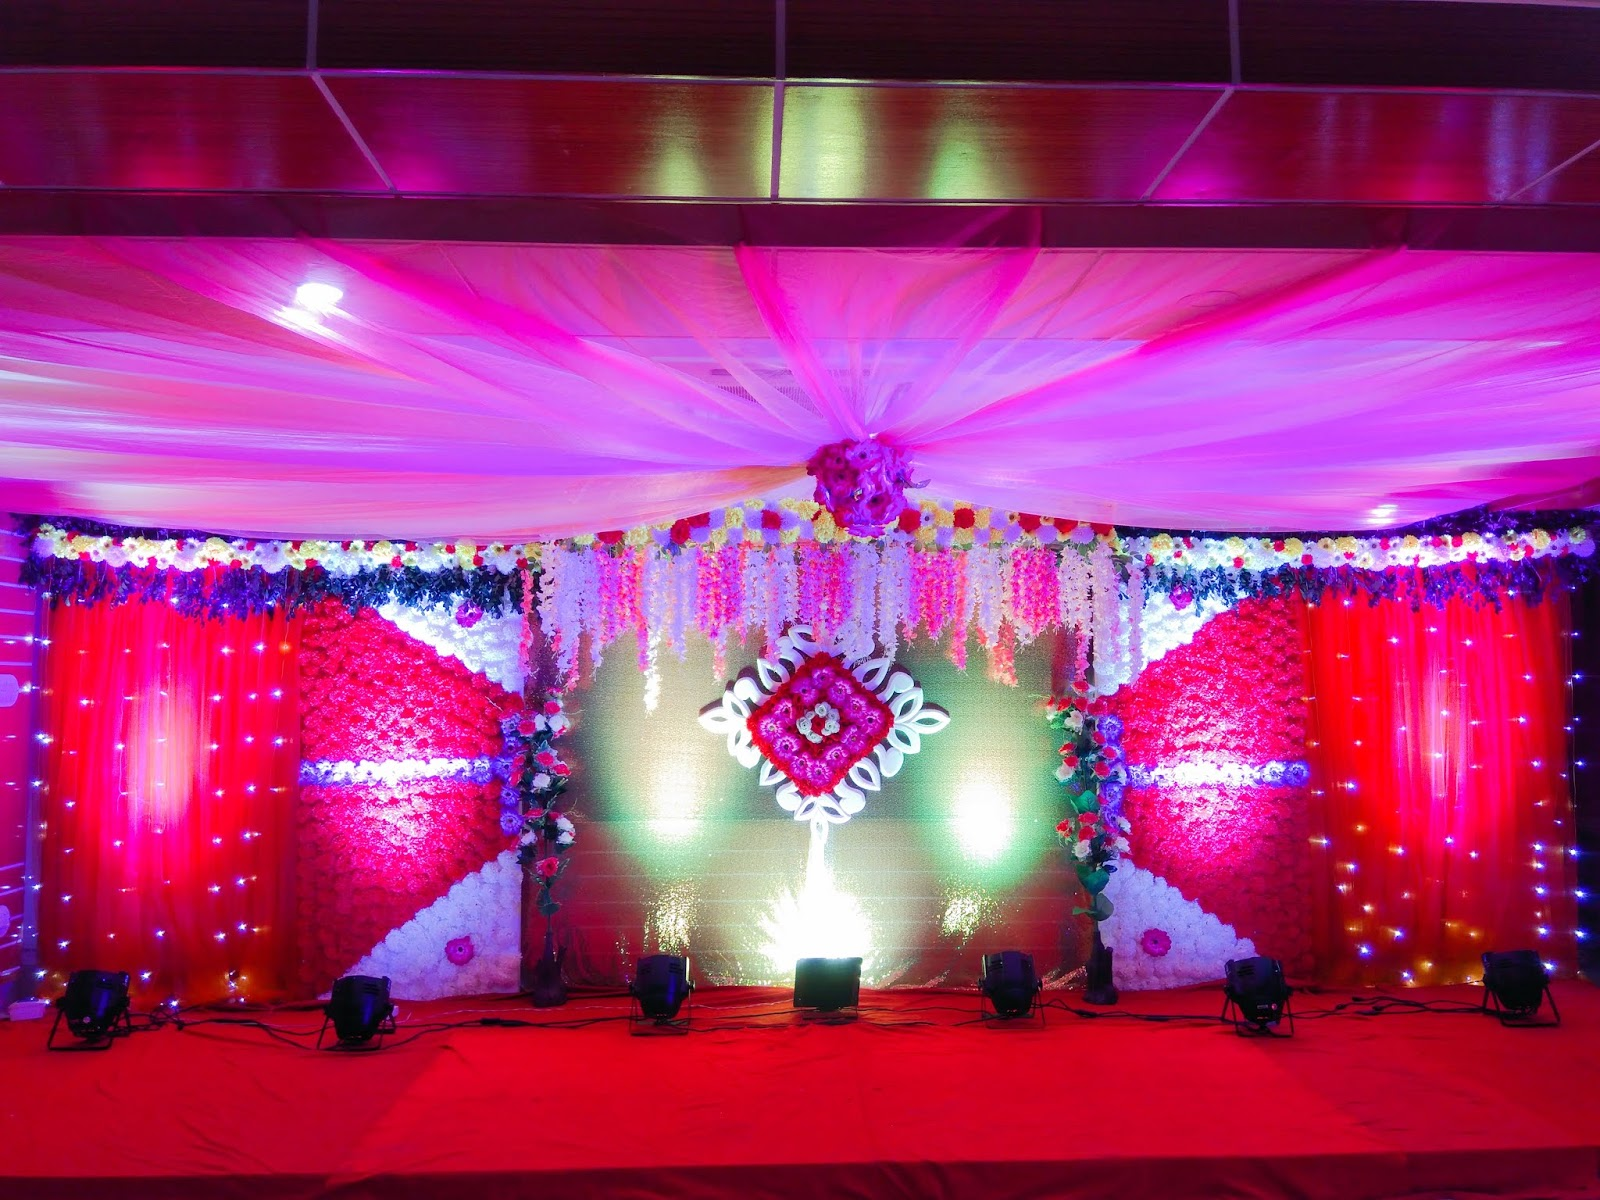 WEEDING THEME DÉCOR BY IDEM EVENT MANAGEMENT (CODE IEMB1001)